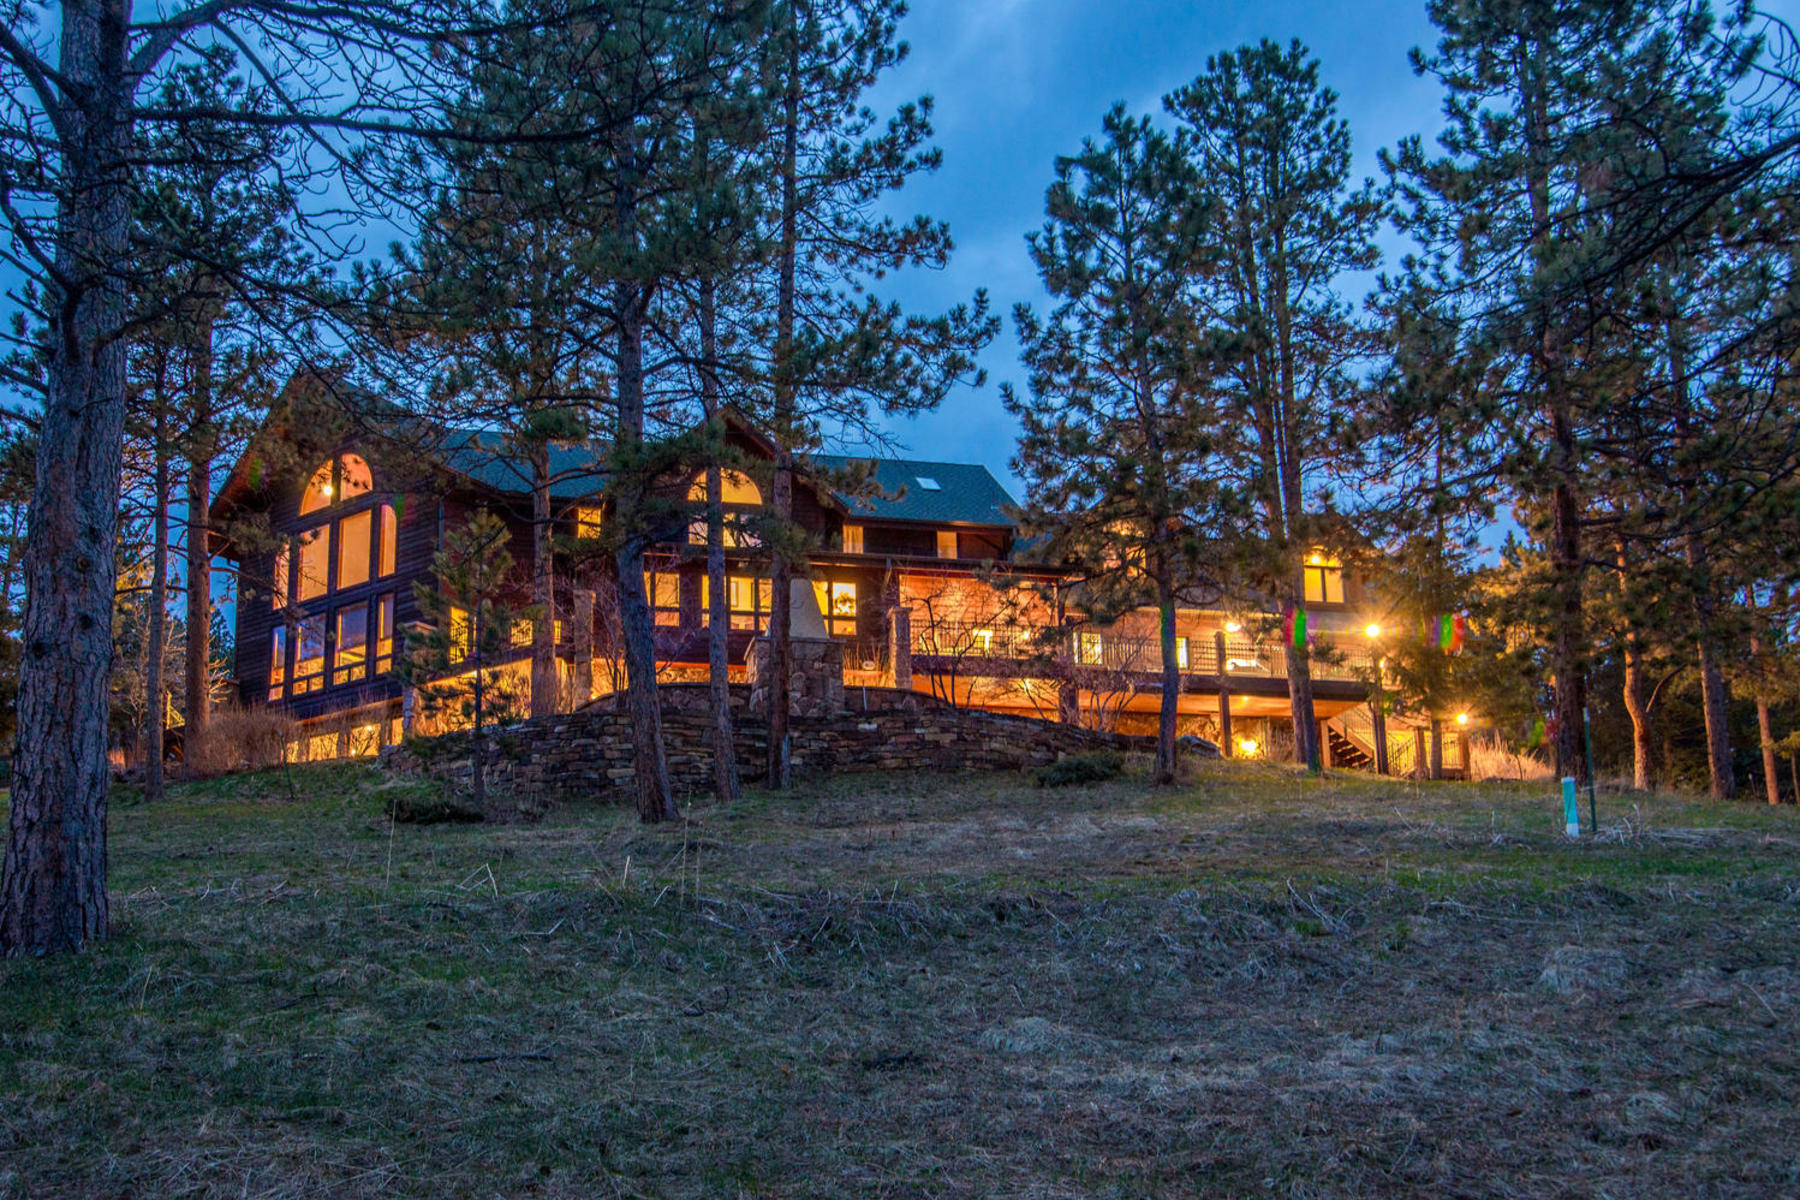 Moradia para Venda às Majestic Estate Nestled on 42.42 Acres 28775 Cragmont Drive, Evergreen, Colorado, 80439 Estados Unidos